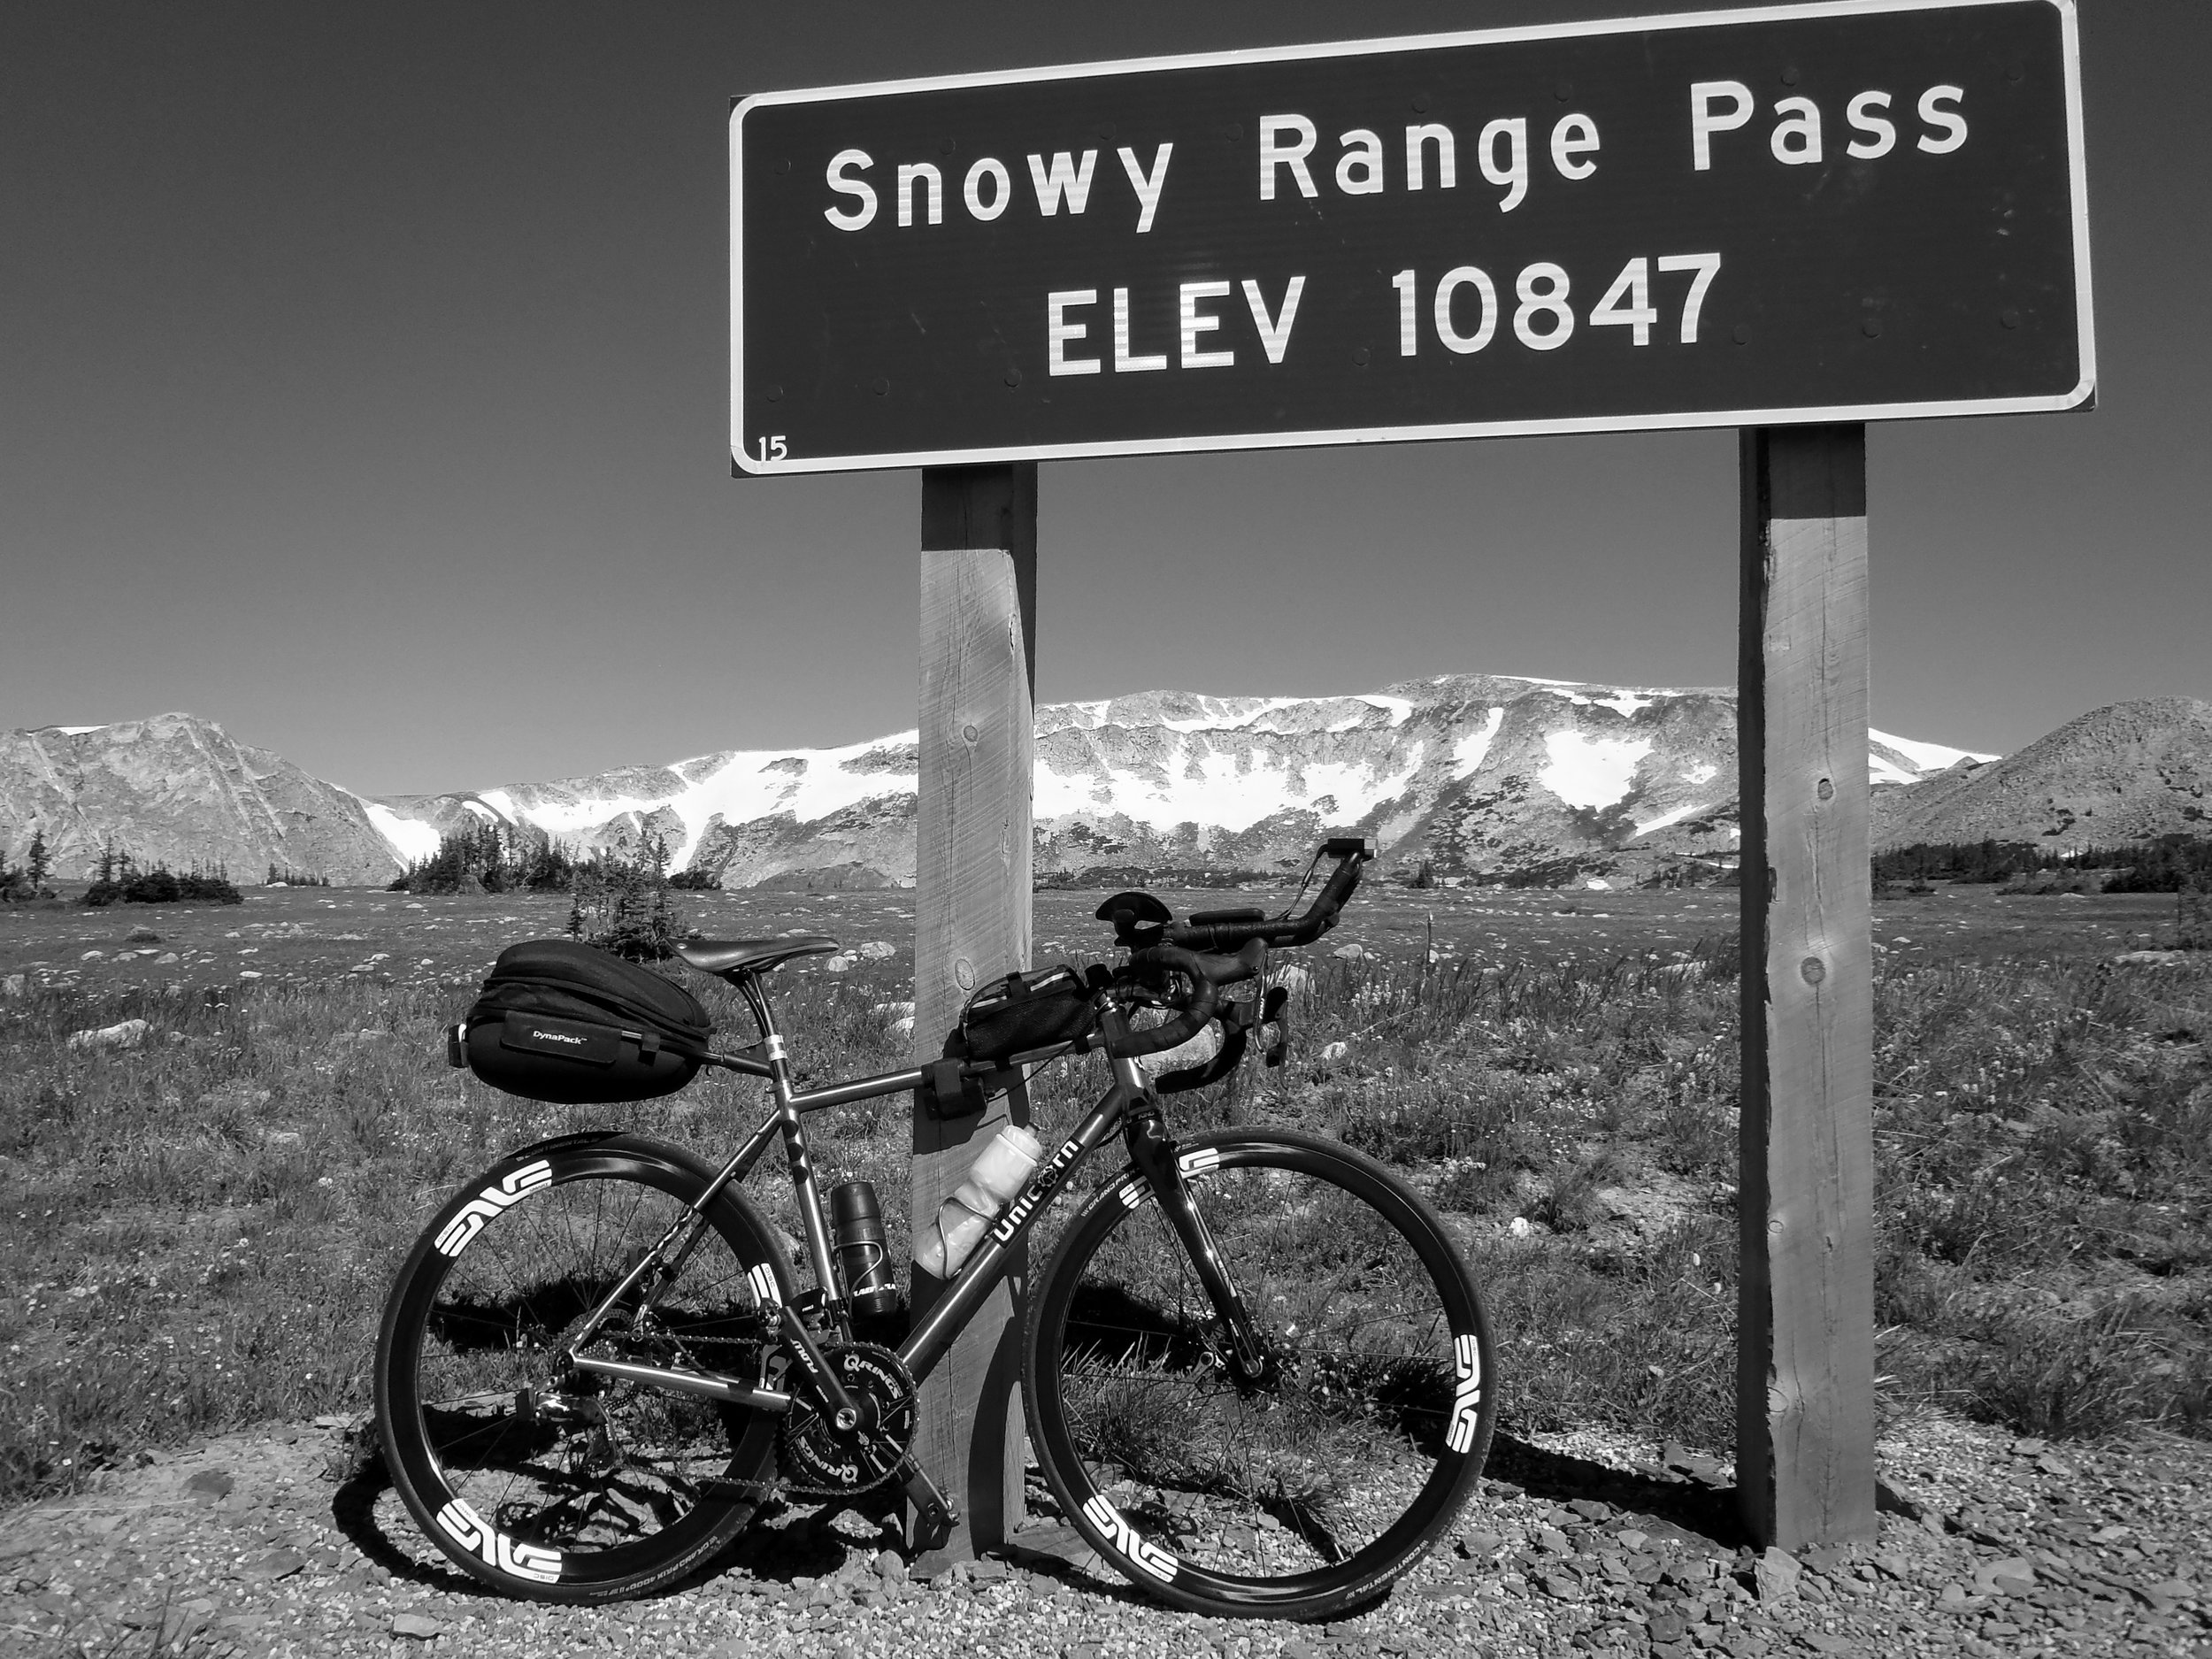 - At home in Colorado he rides double centuries with tight time cut-offs and lots of climbing. He also enjoys the more leisurely brevets. The pinnacle of which have been the Colorado High Country 1200k and the Last Chance 1200k.